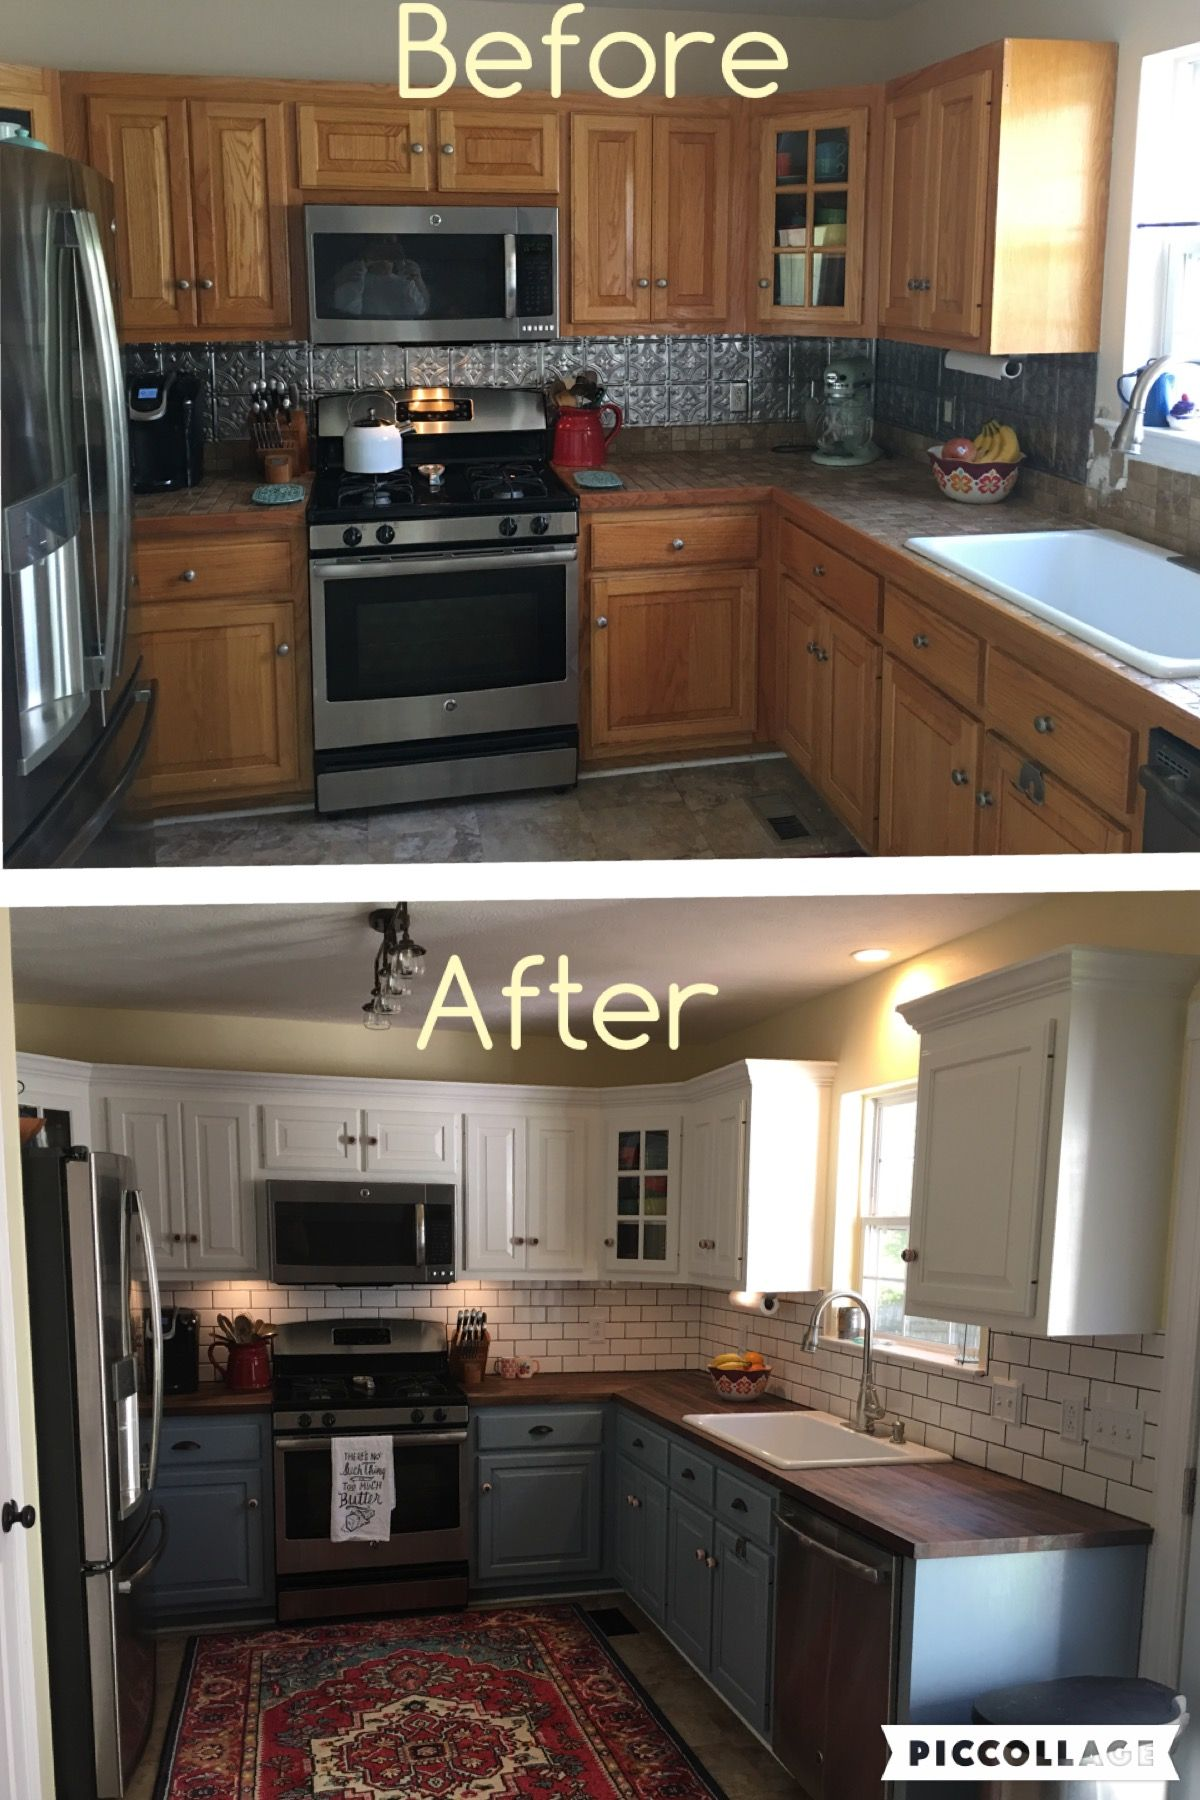 two toned cabinets. valspar cabinet enamel from lowes = successful